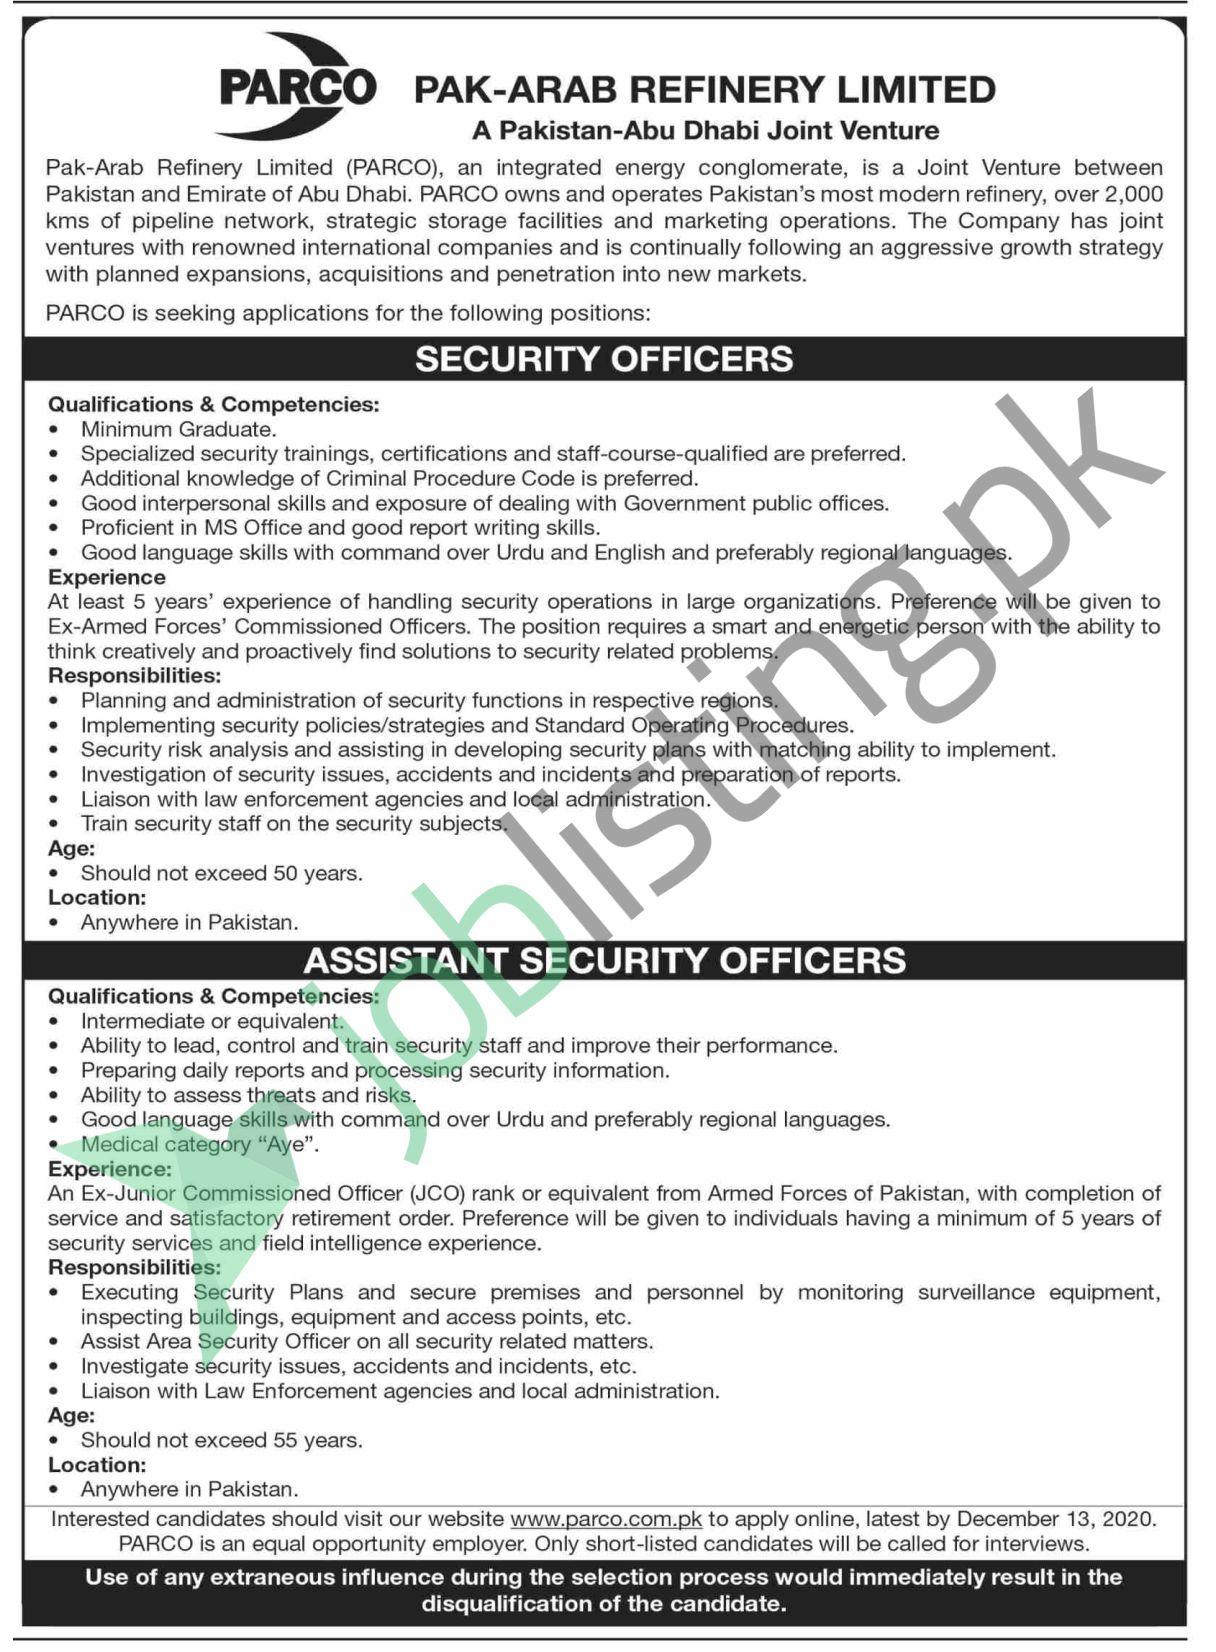 PARCO Pakistan Jobs 2020 for Security Officers